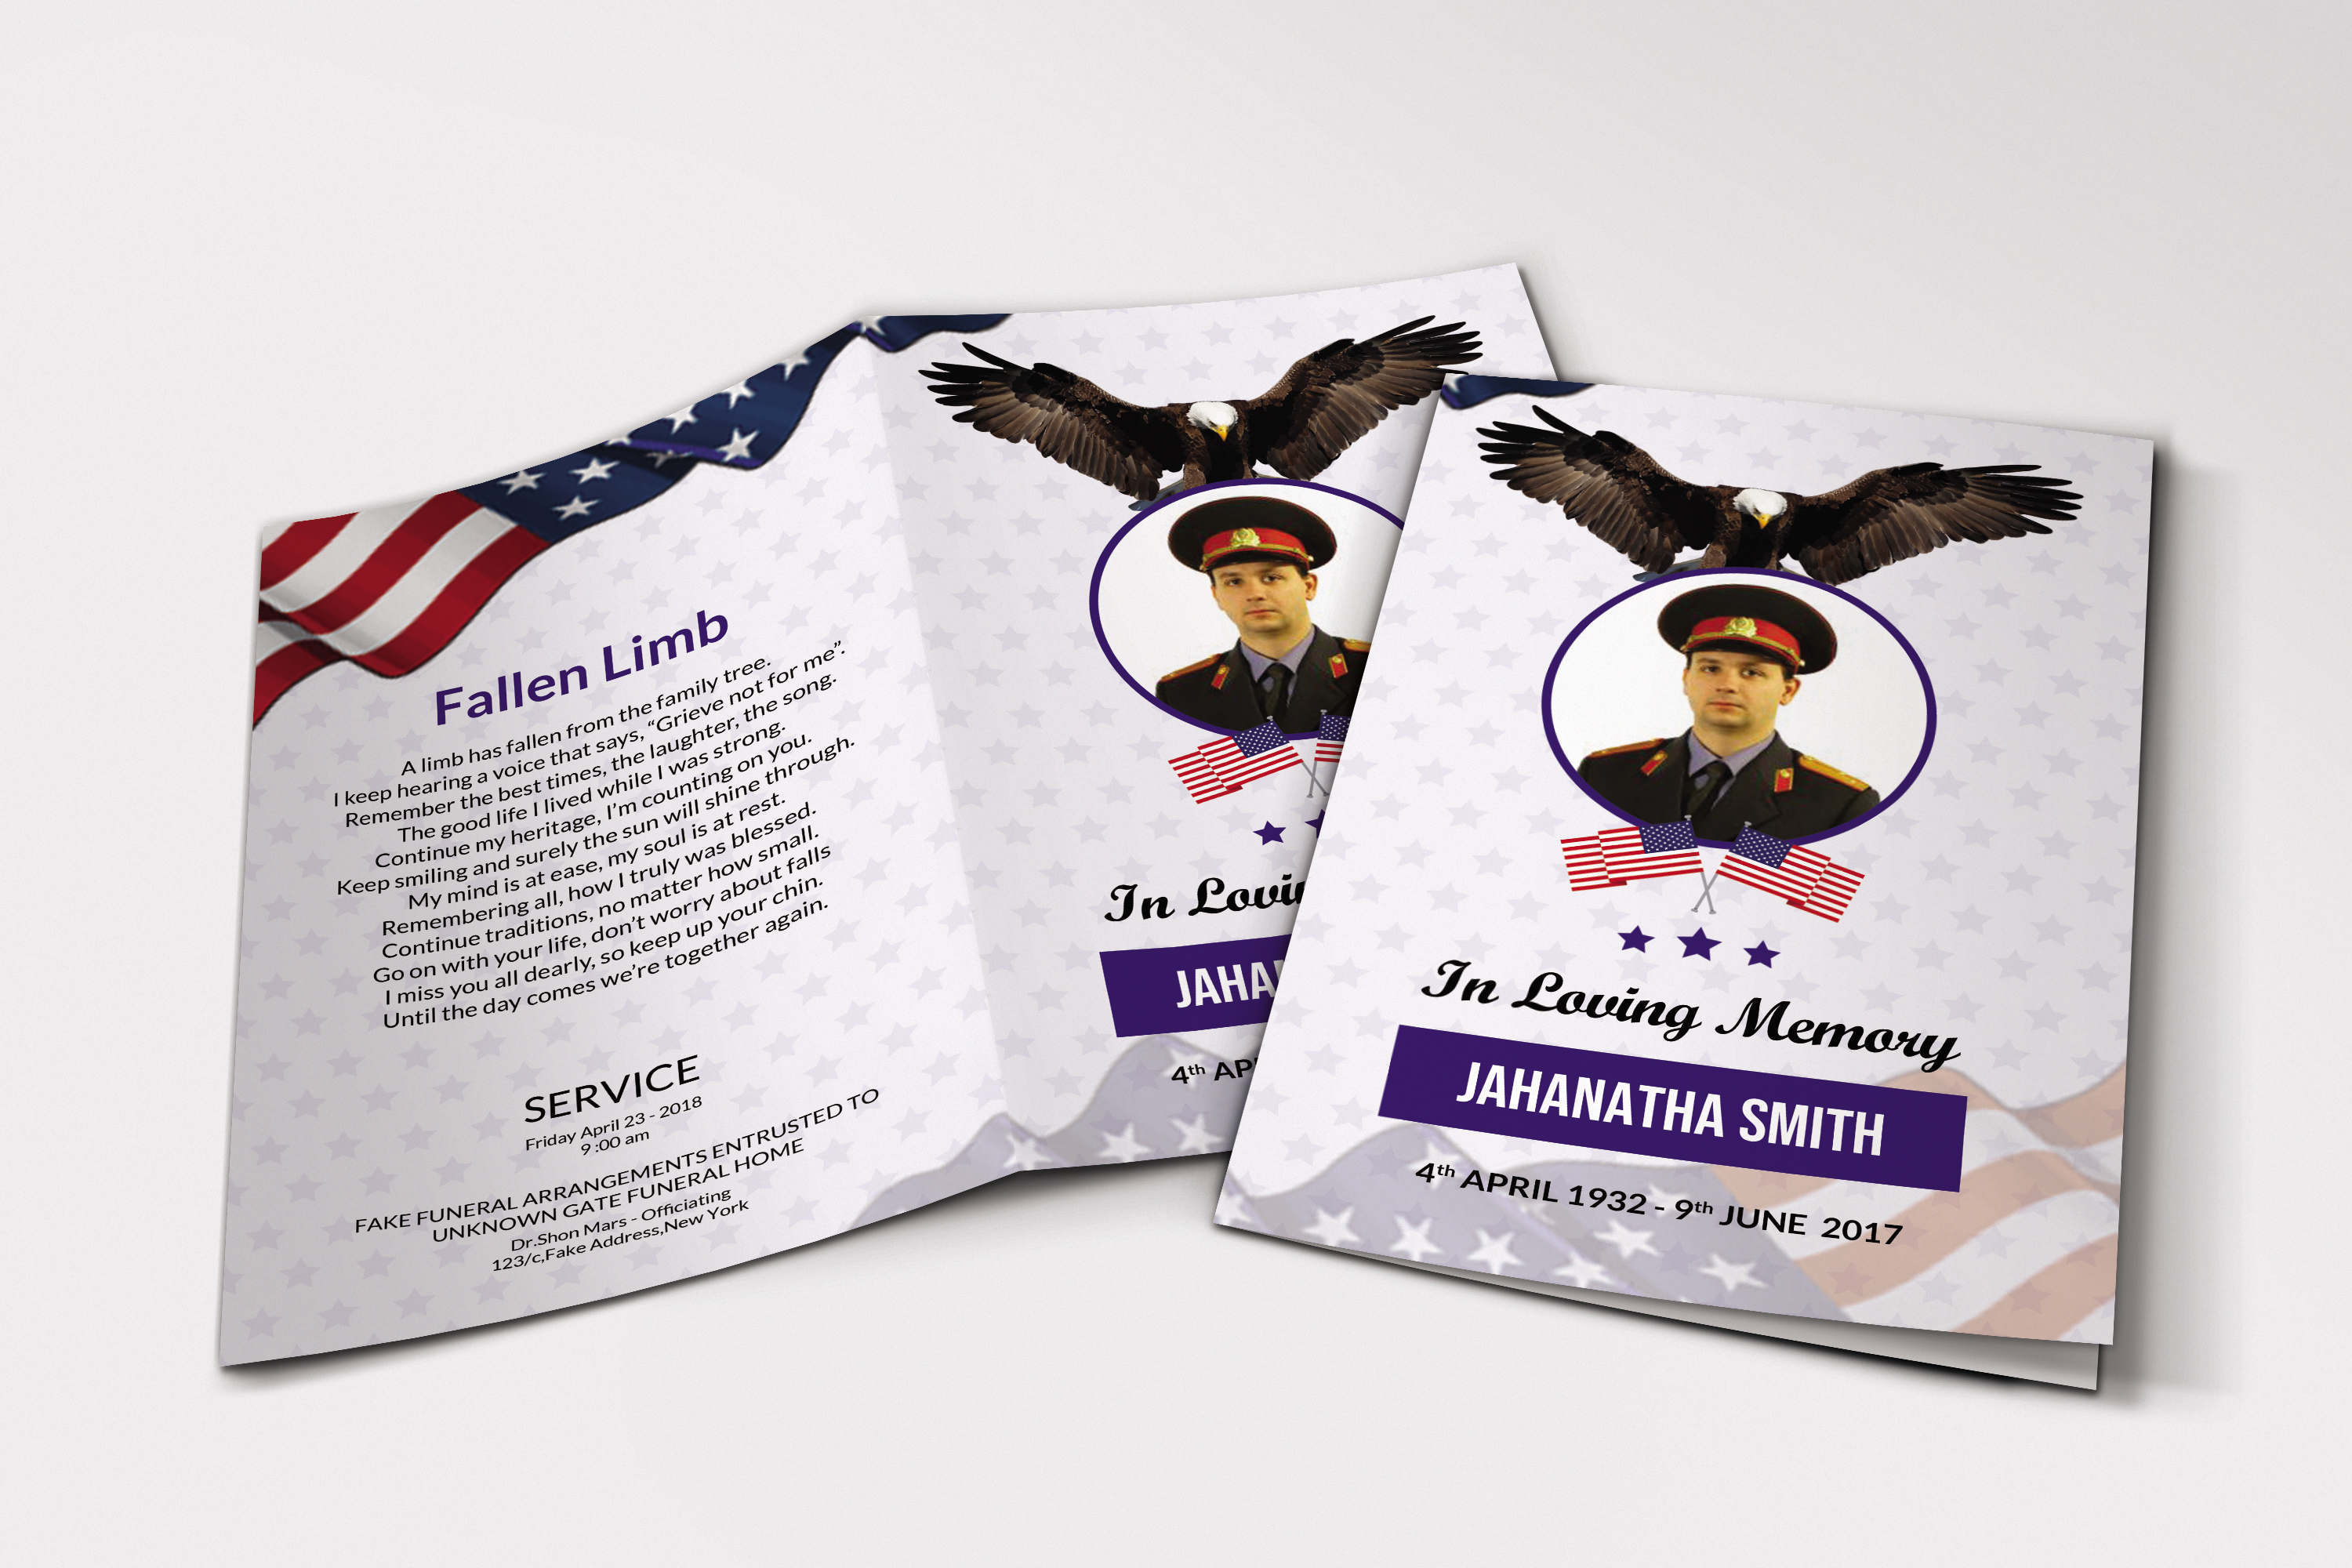 Funeral Program Template Military Army example image 1